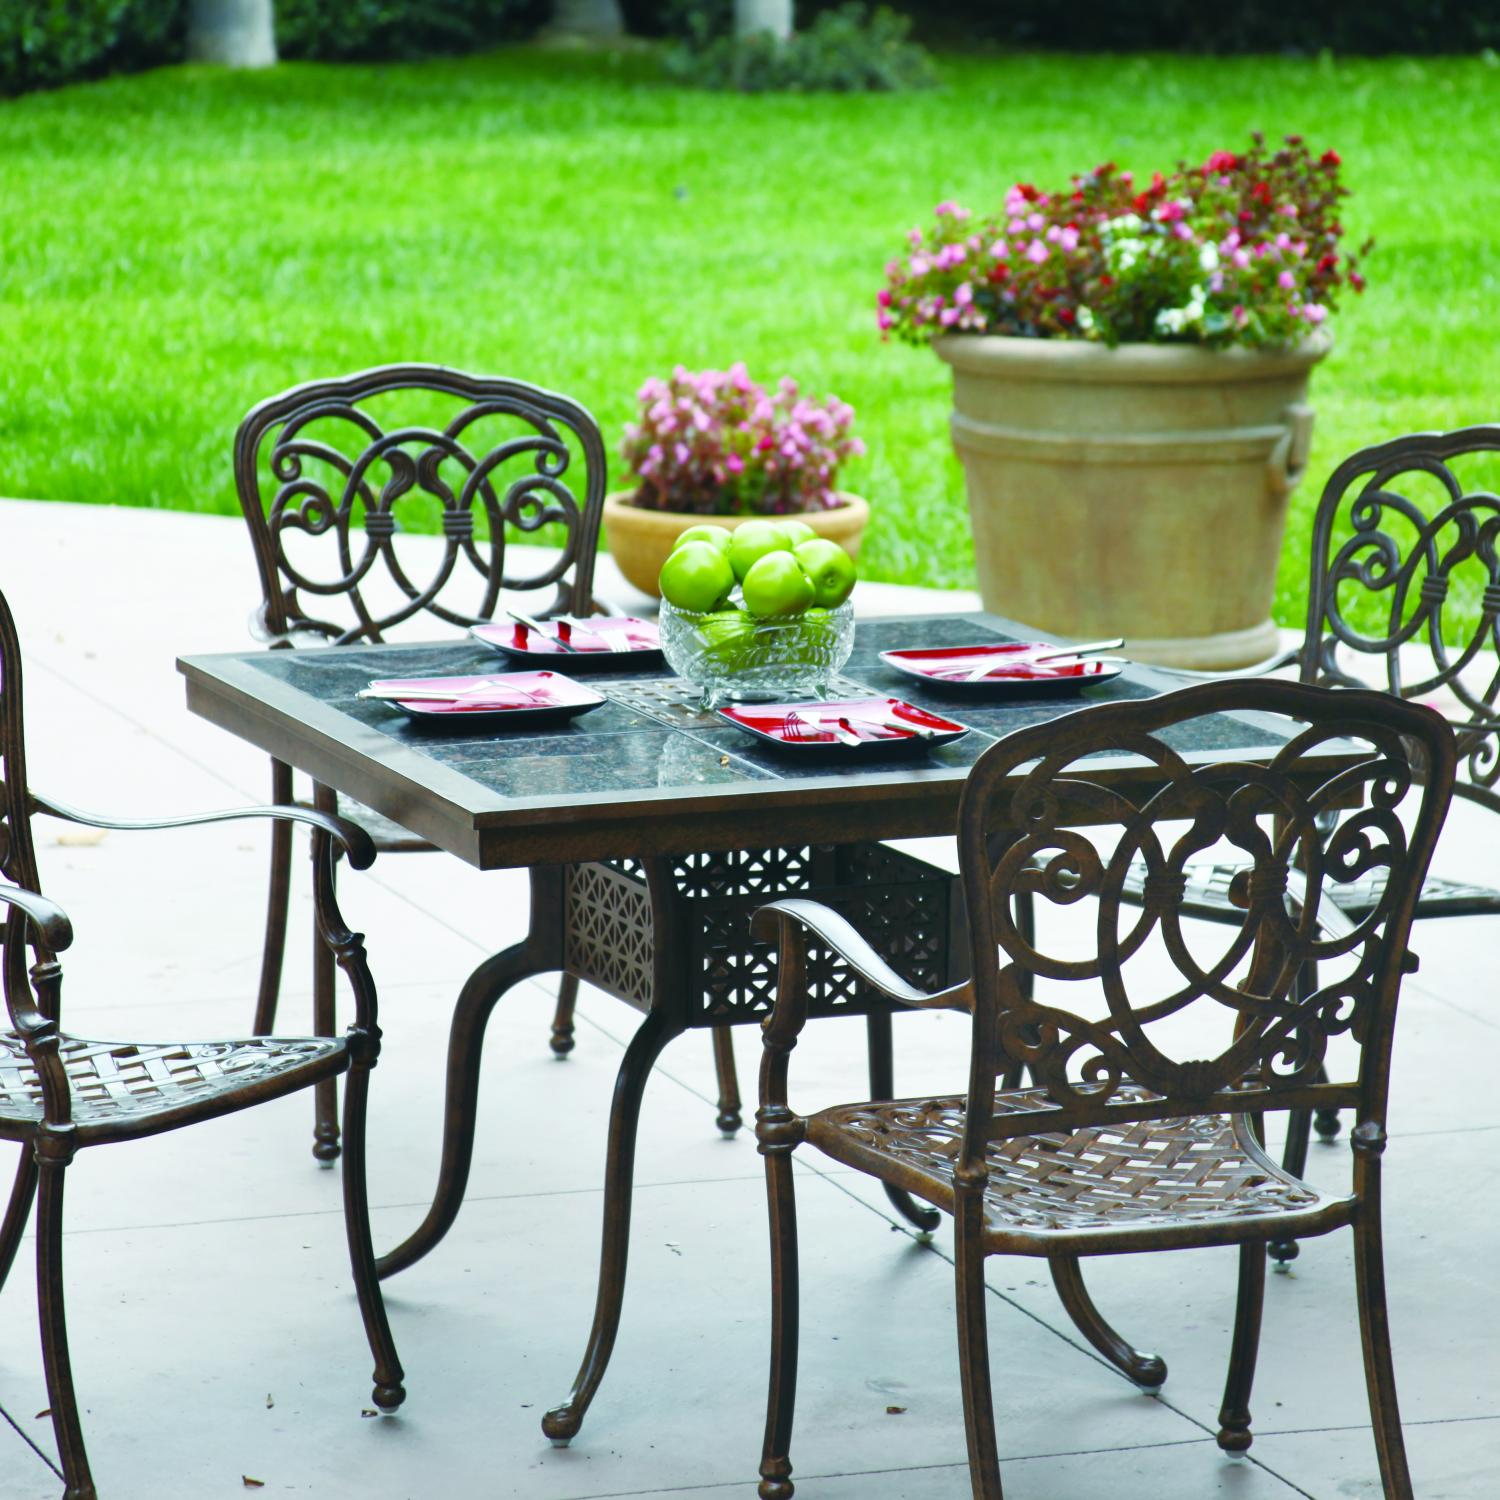 Darlee Florence 4-person Cast Aluminum Patio Dining Set With Granite Top Table - Antique Bronze / Brown Granite Tile at Sears.com